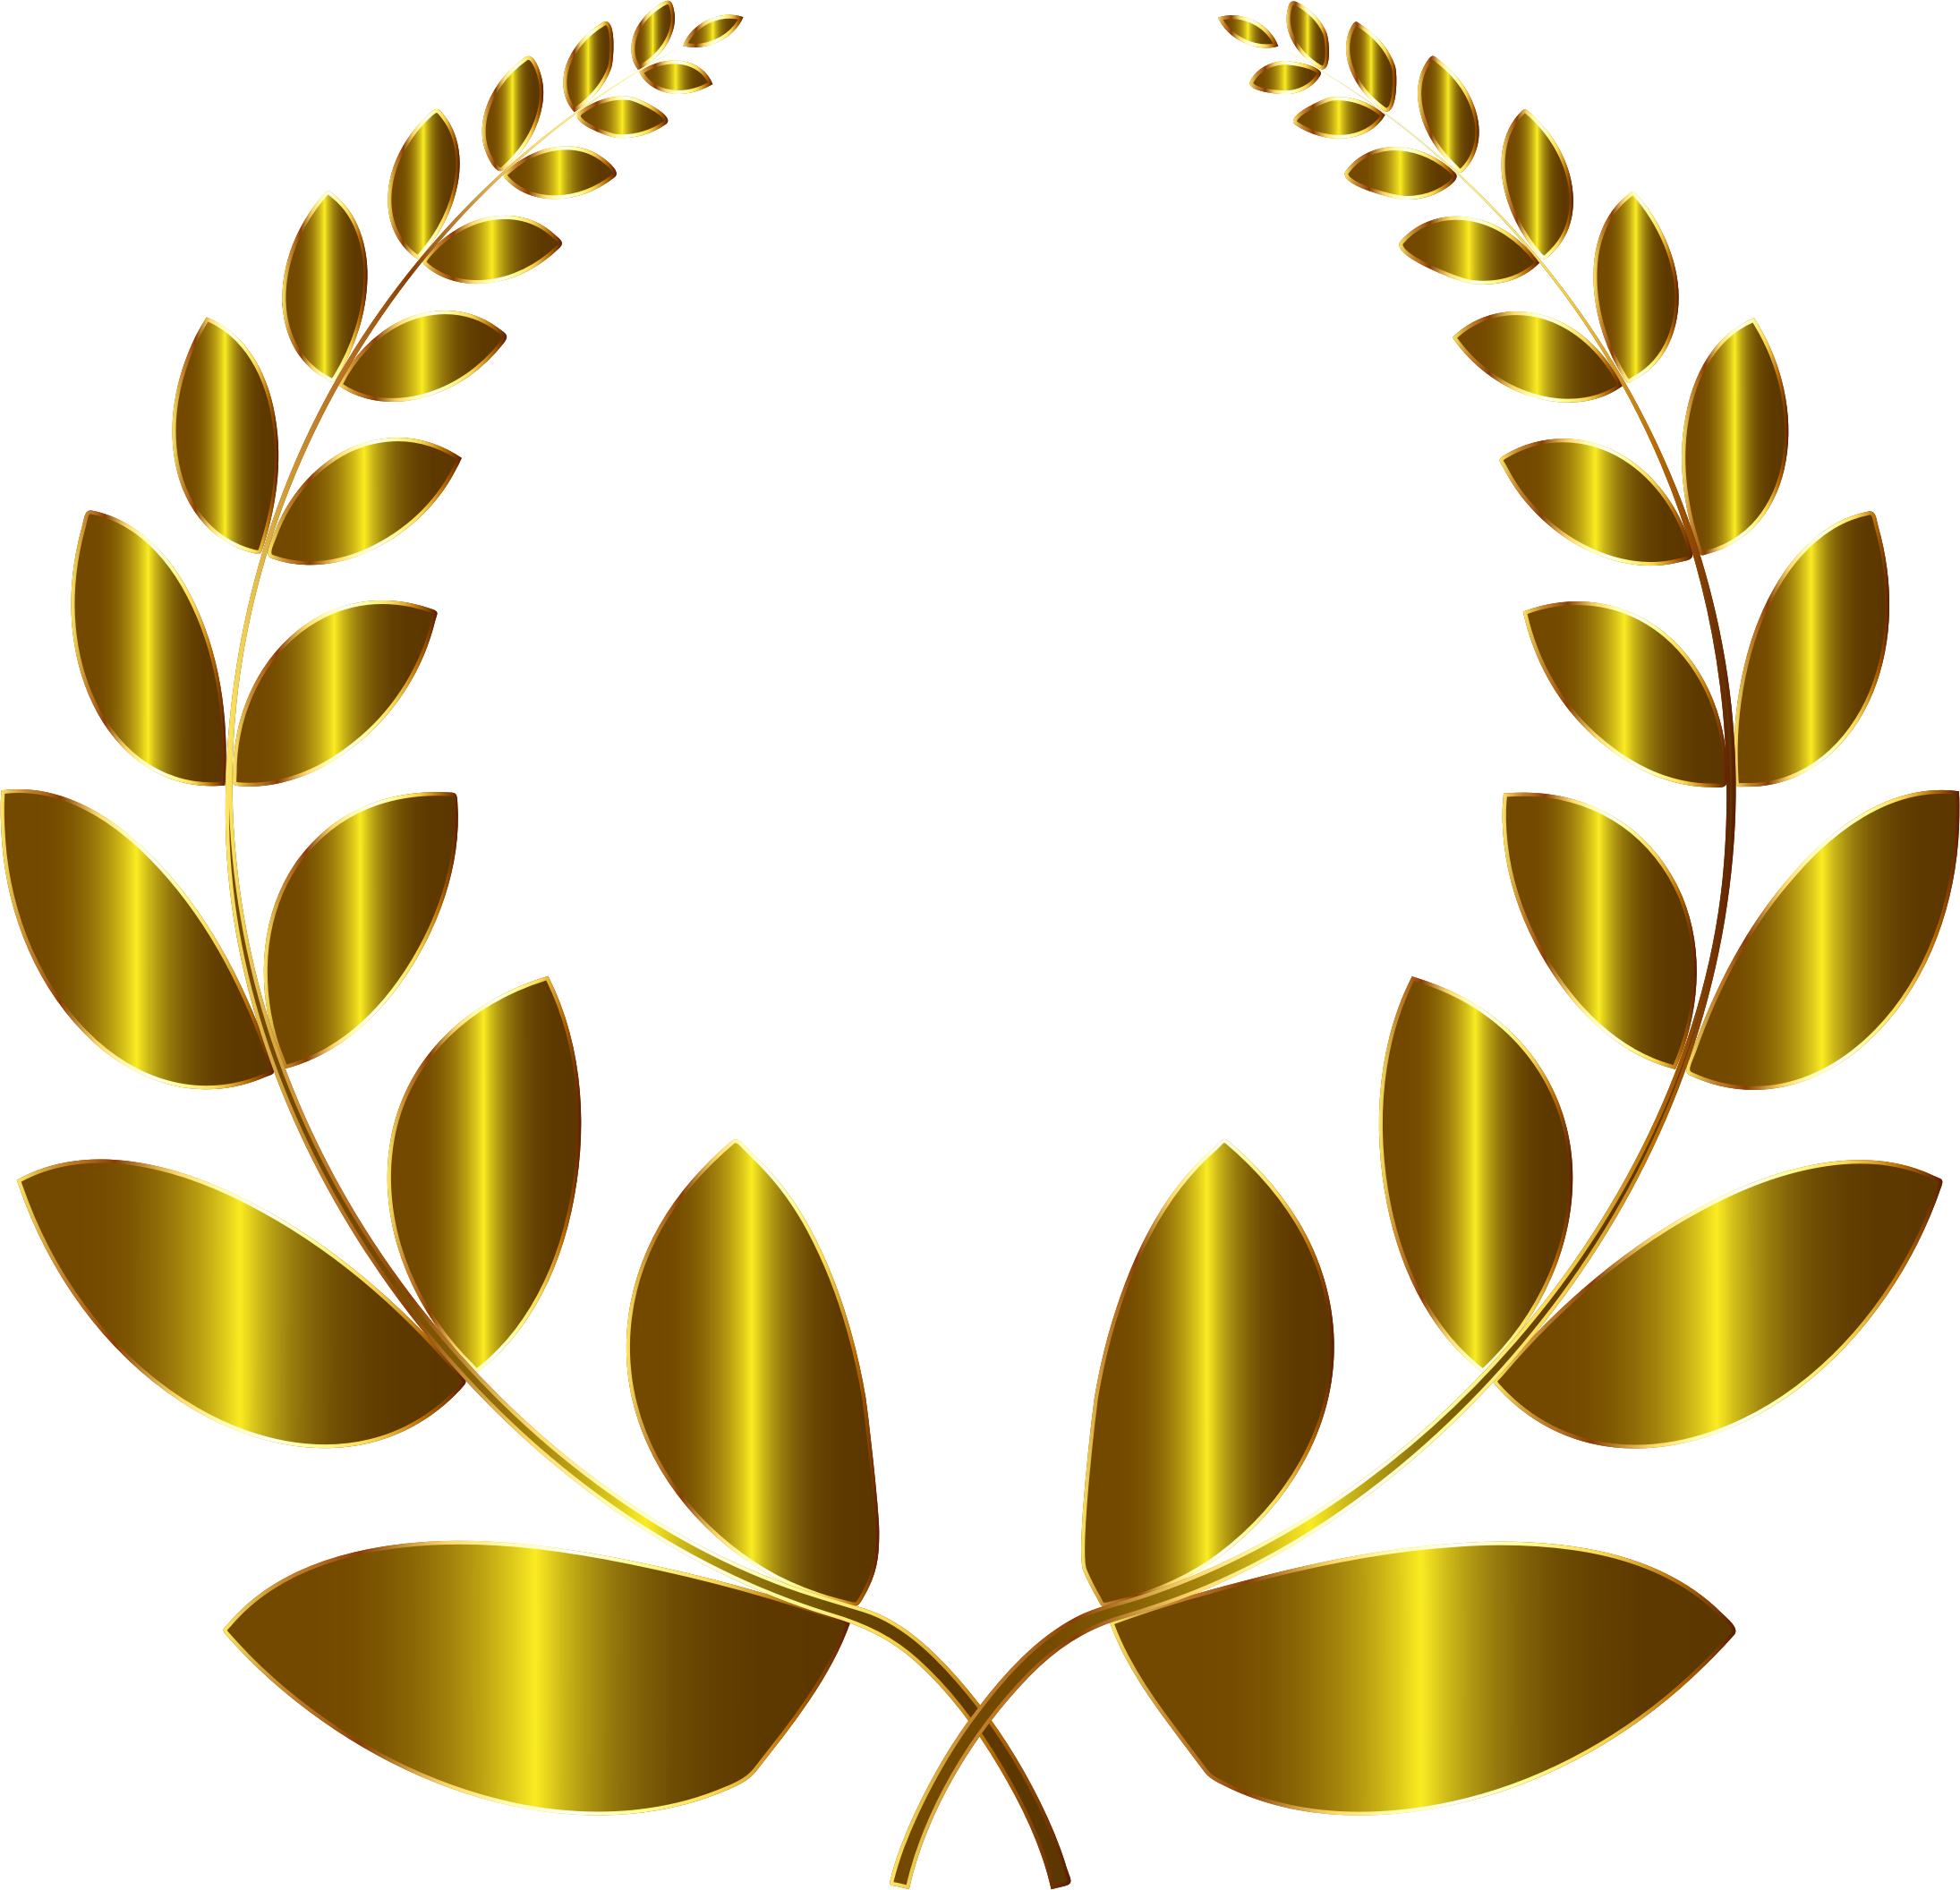 Gold laurel wreath png. No background icons free